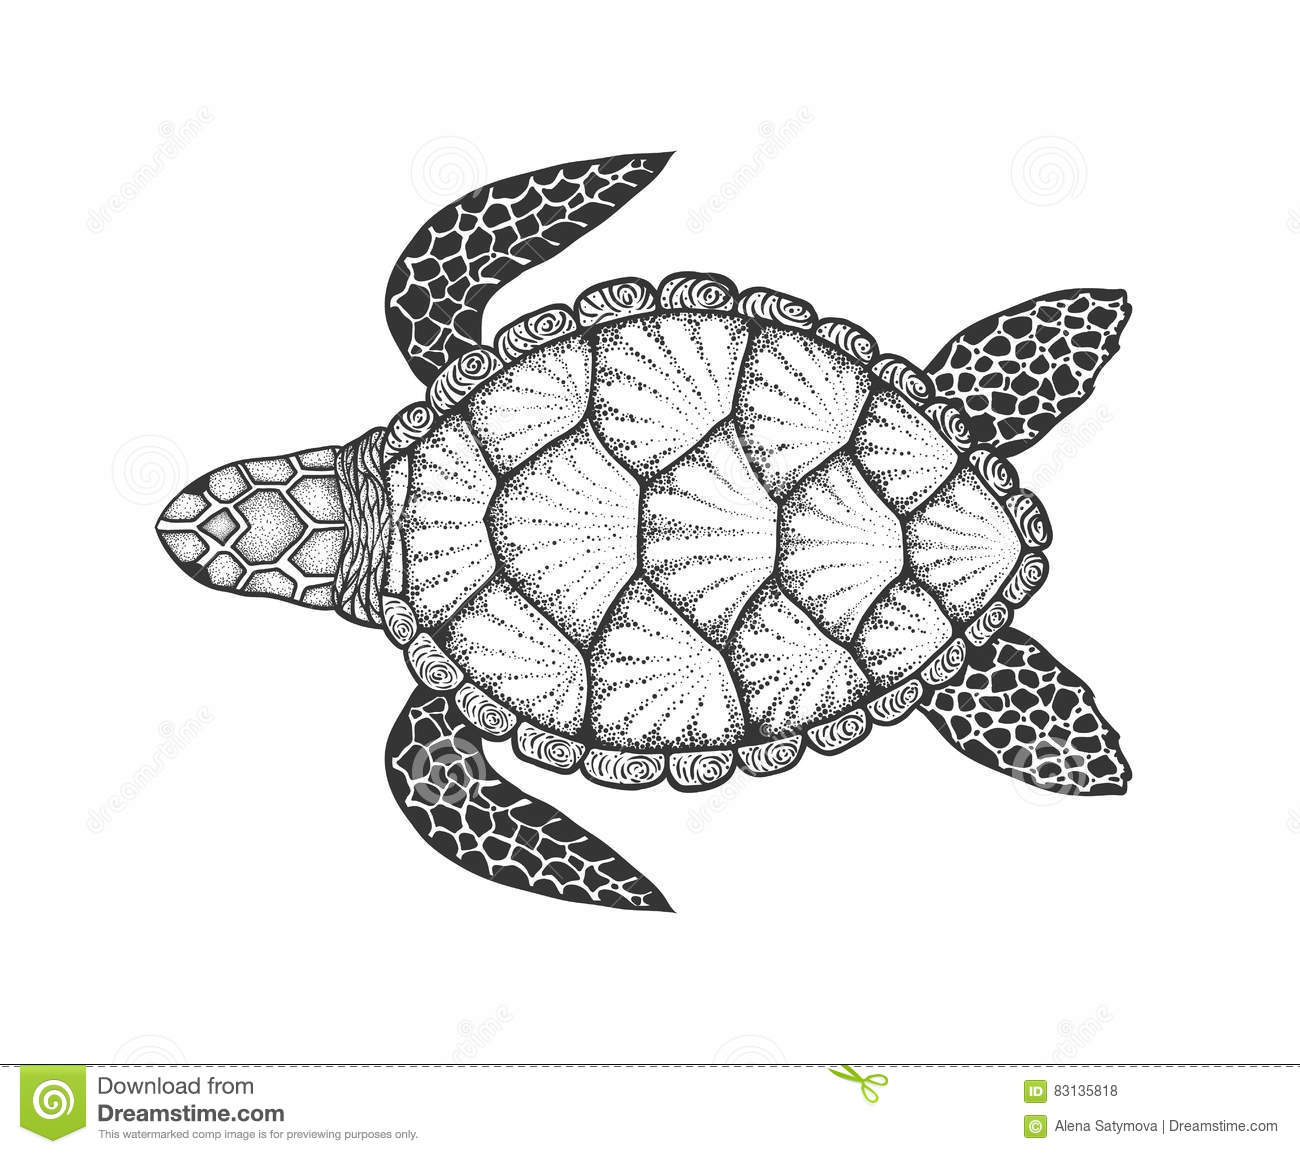 Sea Turtle In Line Art Style Hand Drawn Vector Illustration Top View Design For Coloring Book Set Of Ocean Elements